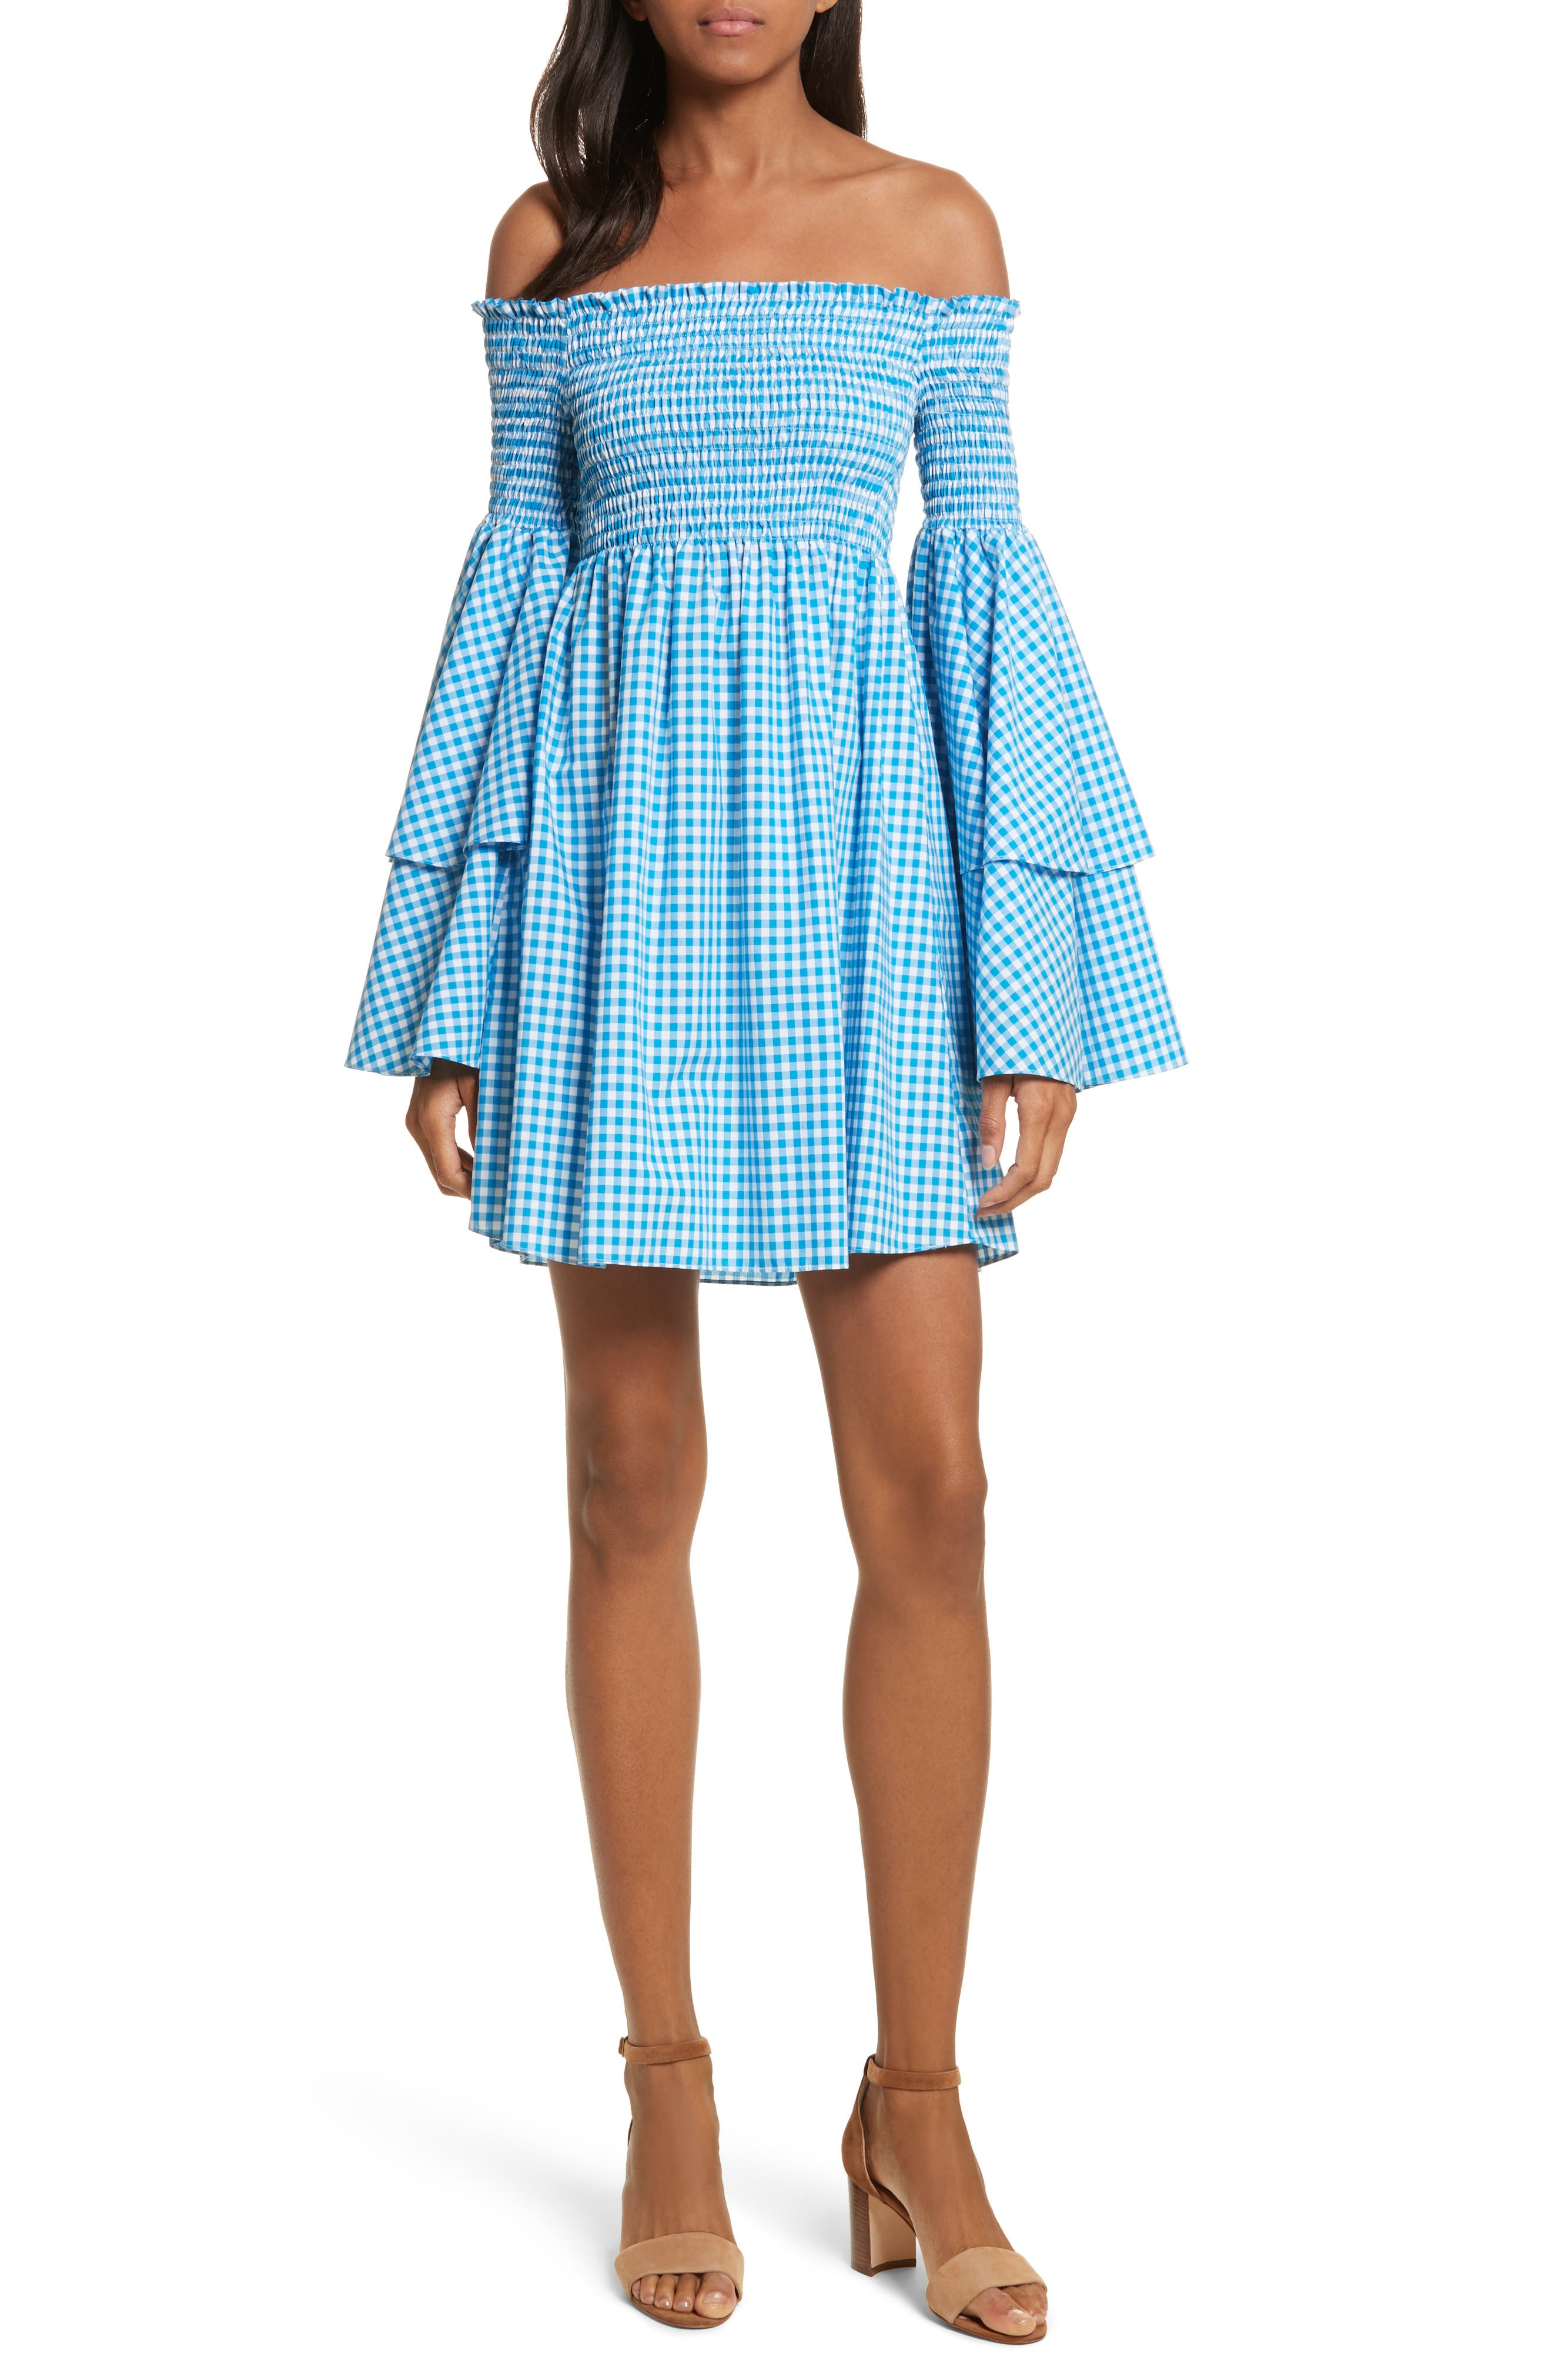 Appolonia Gingham Off the Shoulder Dress,                             Main thumbnail 1, color,                             451